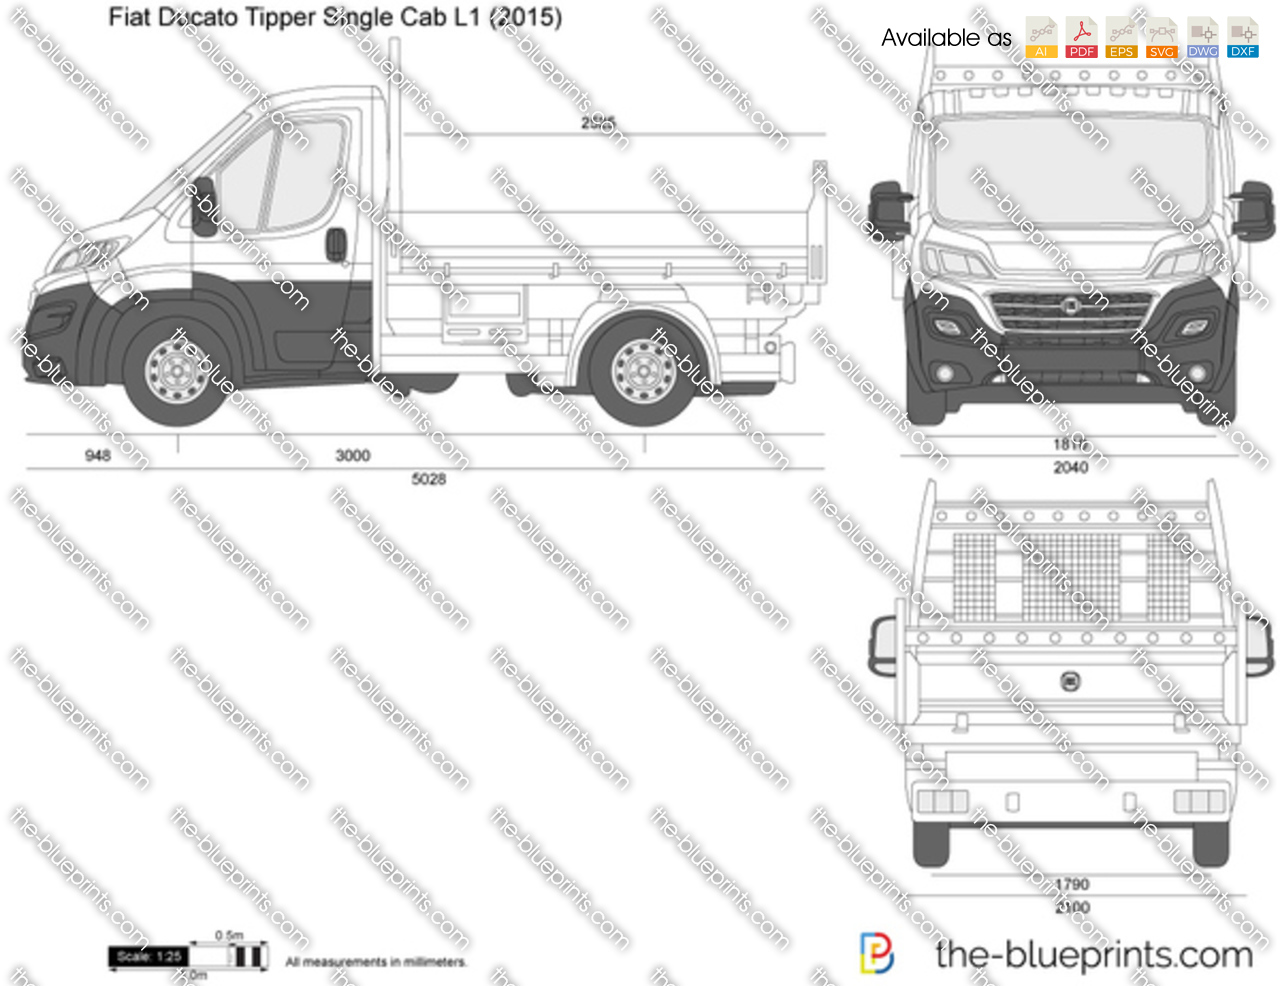 fiat ducato tipper single cab l1 vector drawing. Black Bedroom Furniture Sets. Home Design Ideas